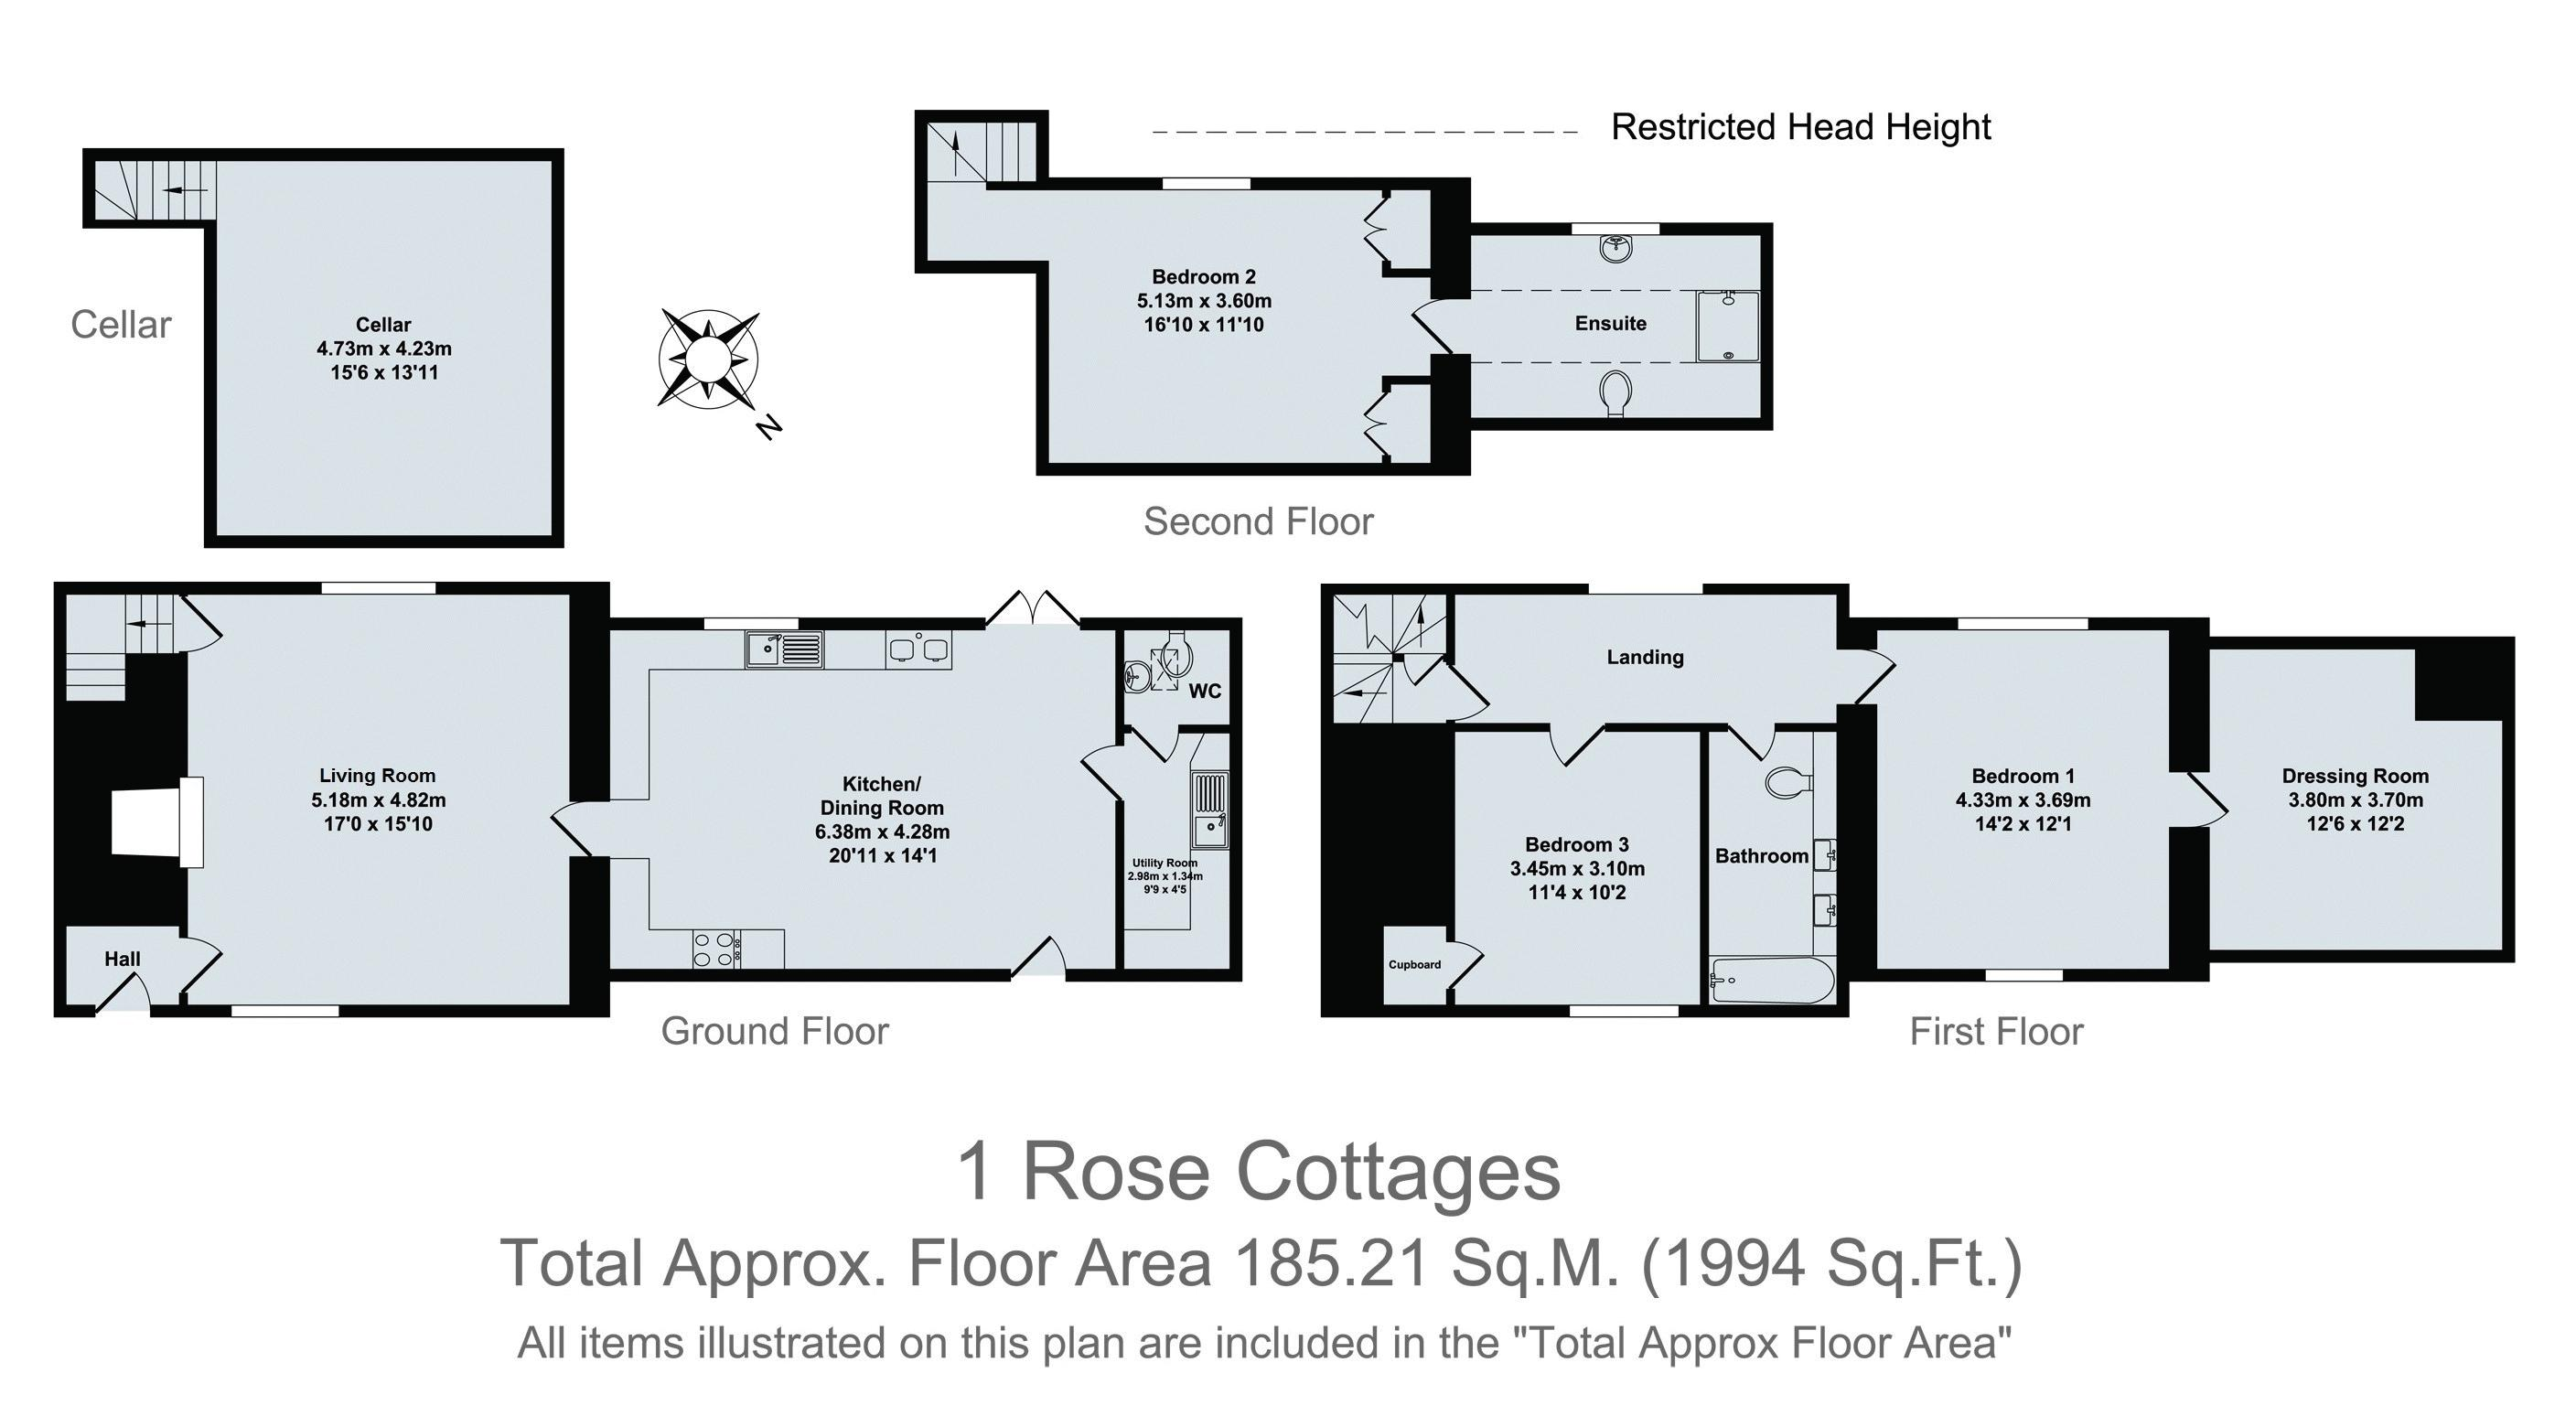 Rose Cottages